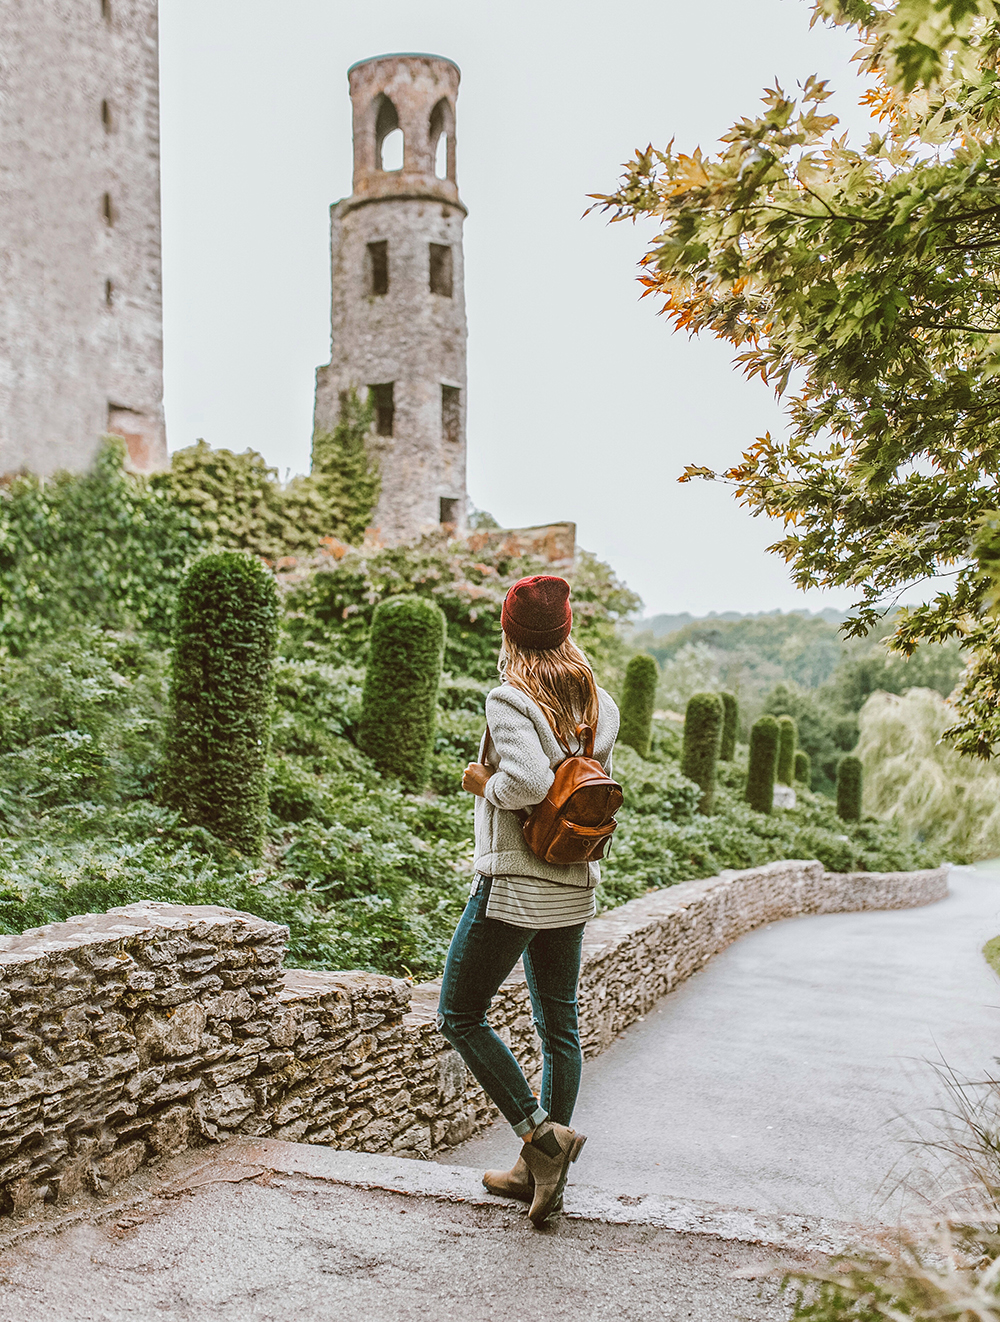 livvyland-blog-olivia-watson-austin-texas-travel-lifestyle-blogger-what-do-see-ireland-cork-blarney-castle-14